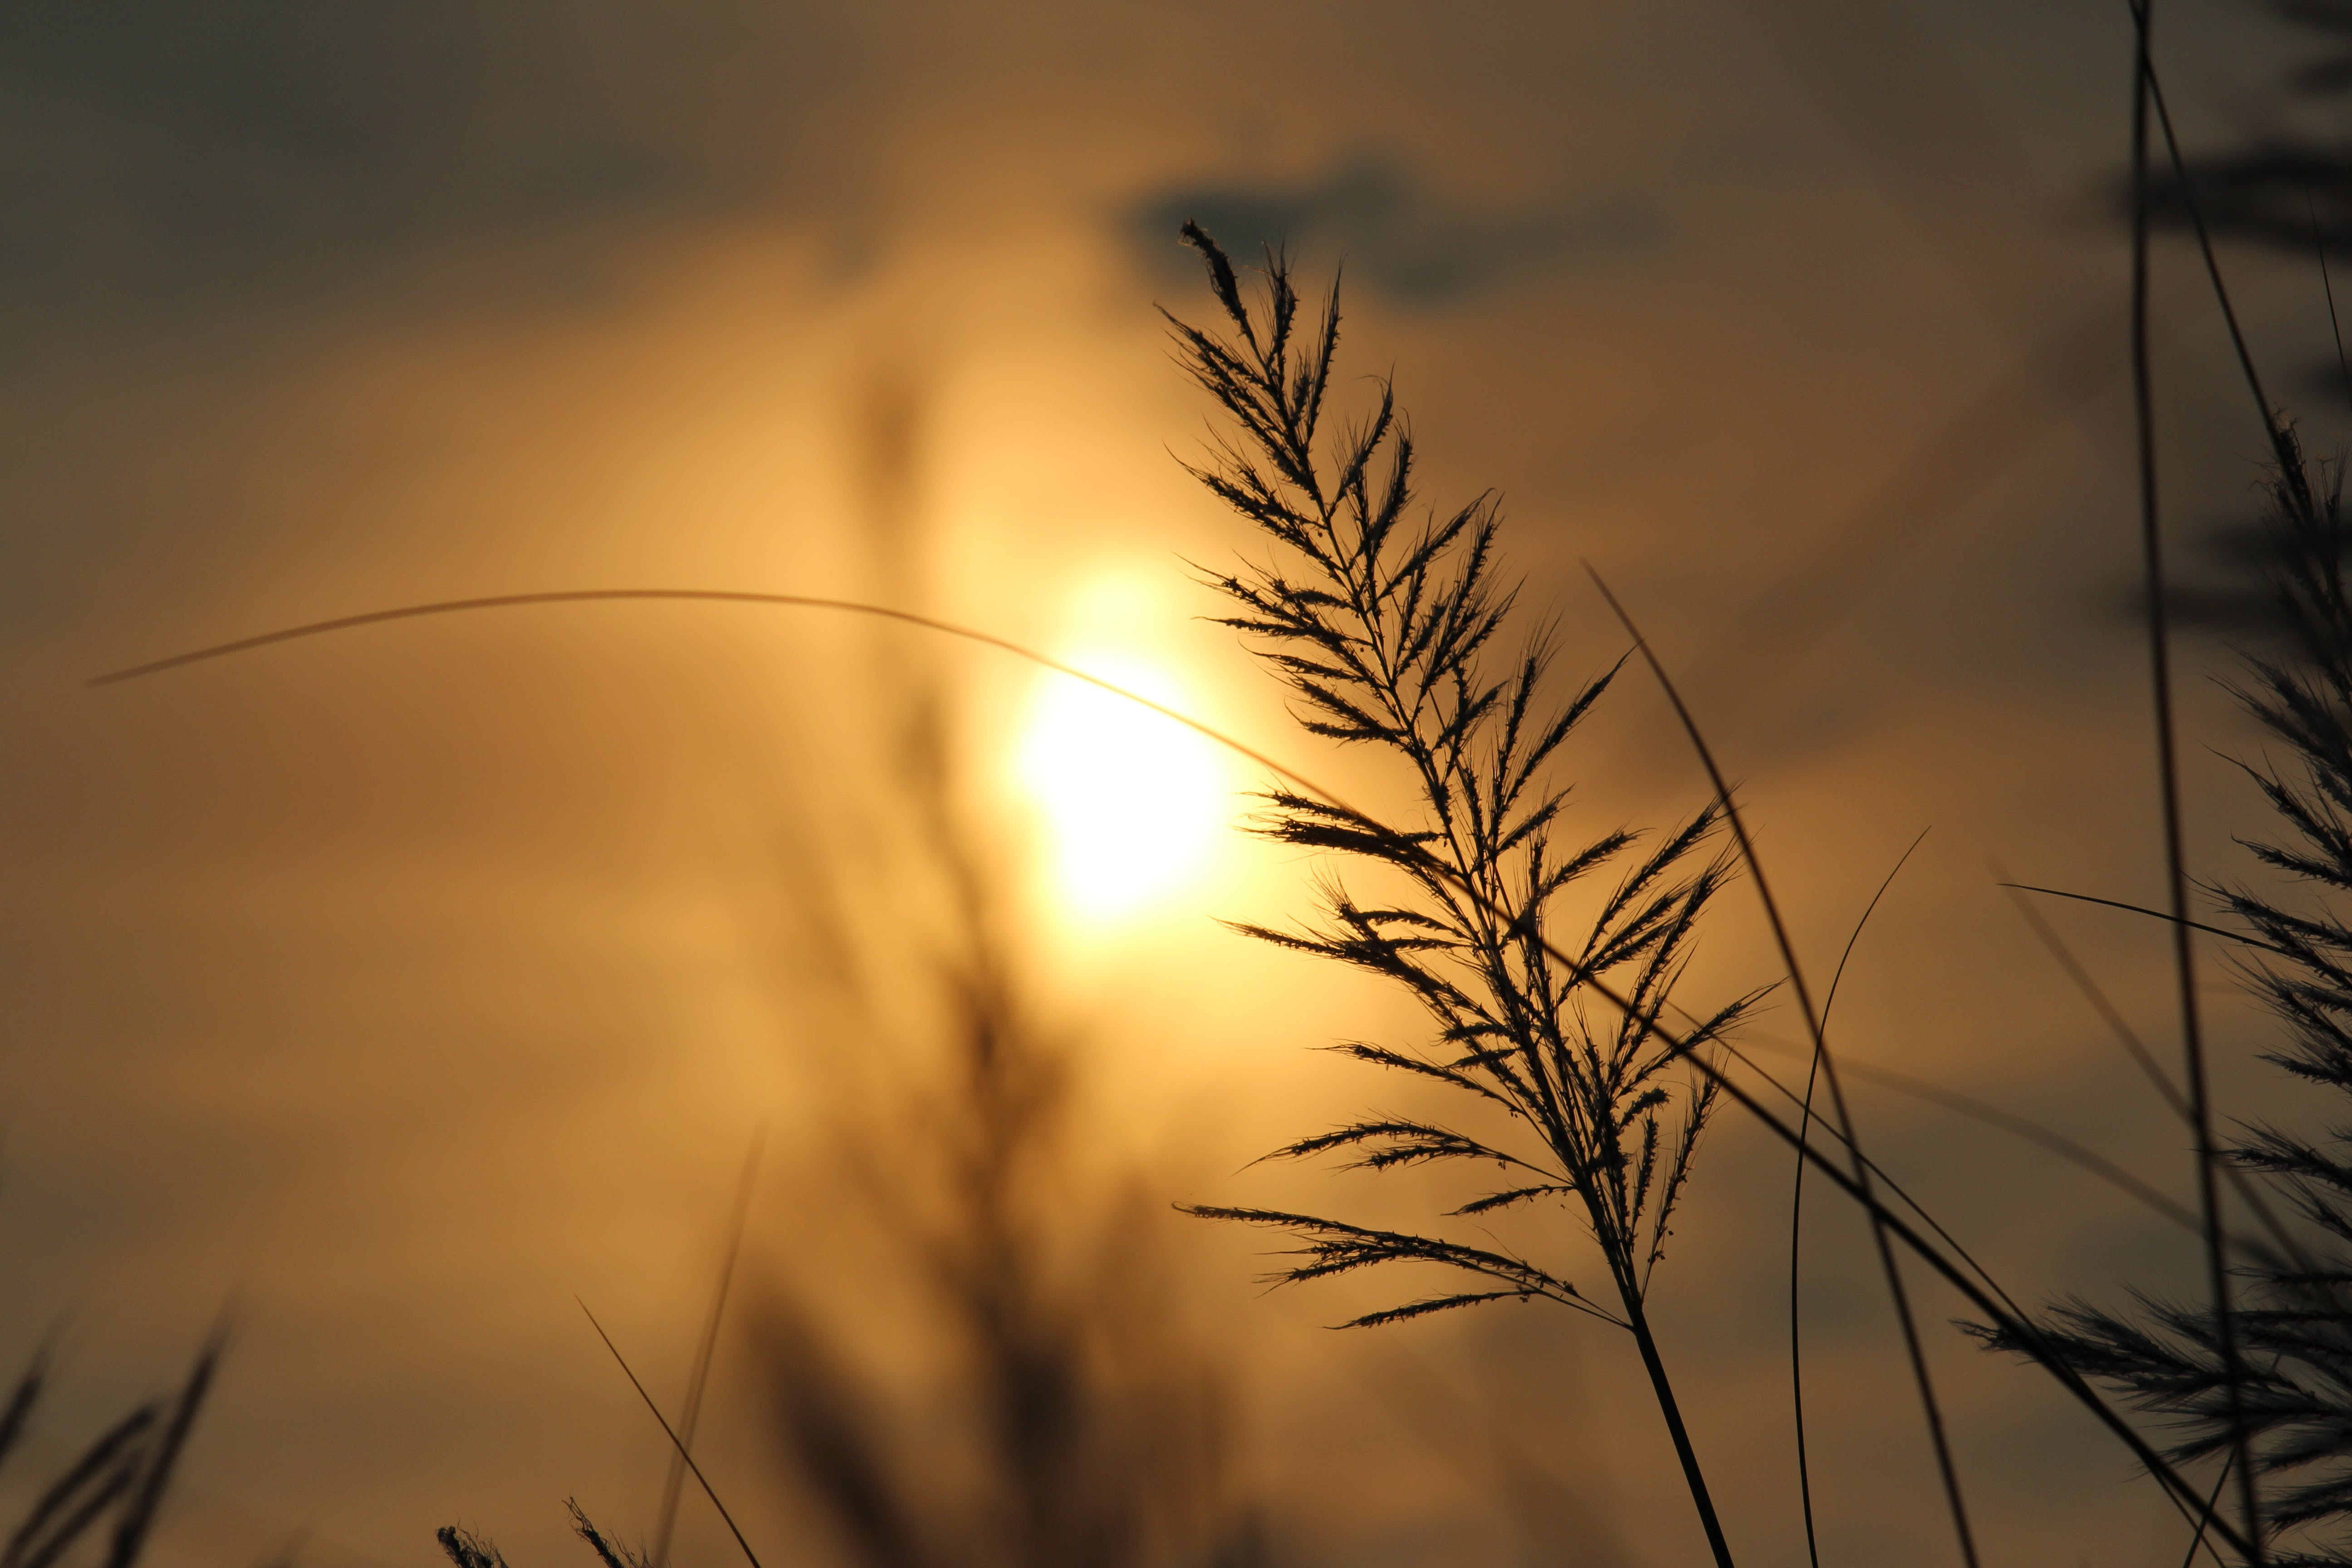 Silhouette of Plant